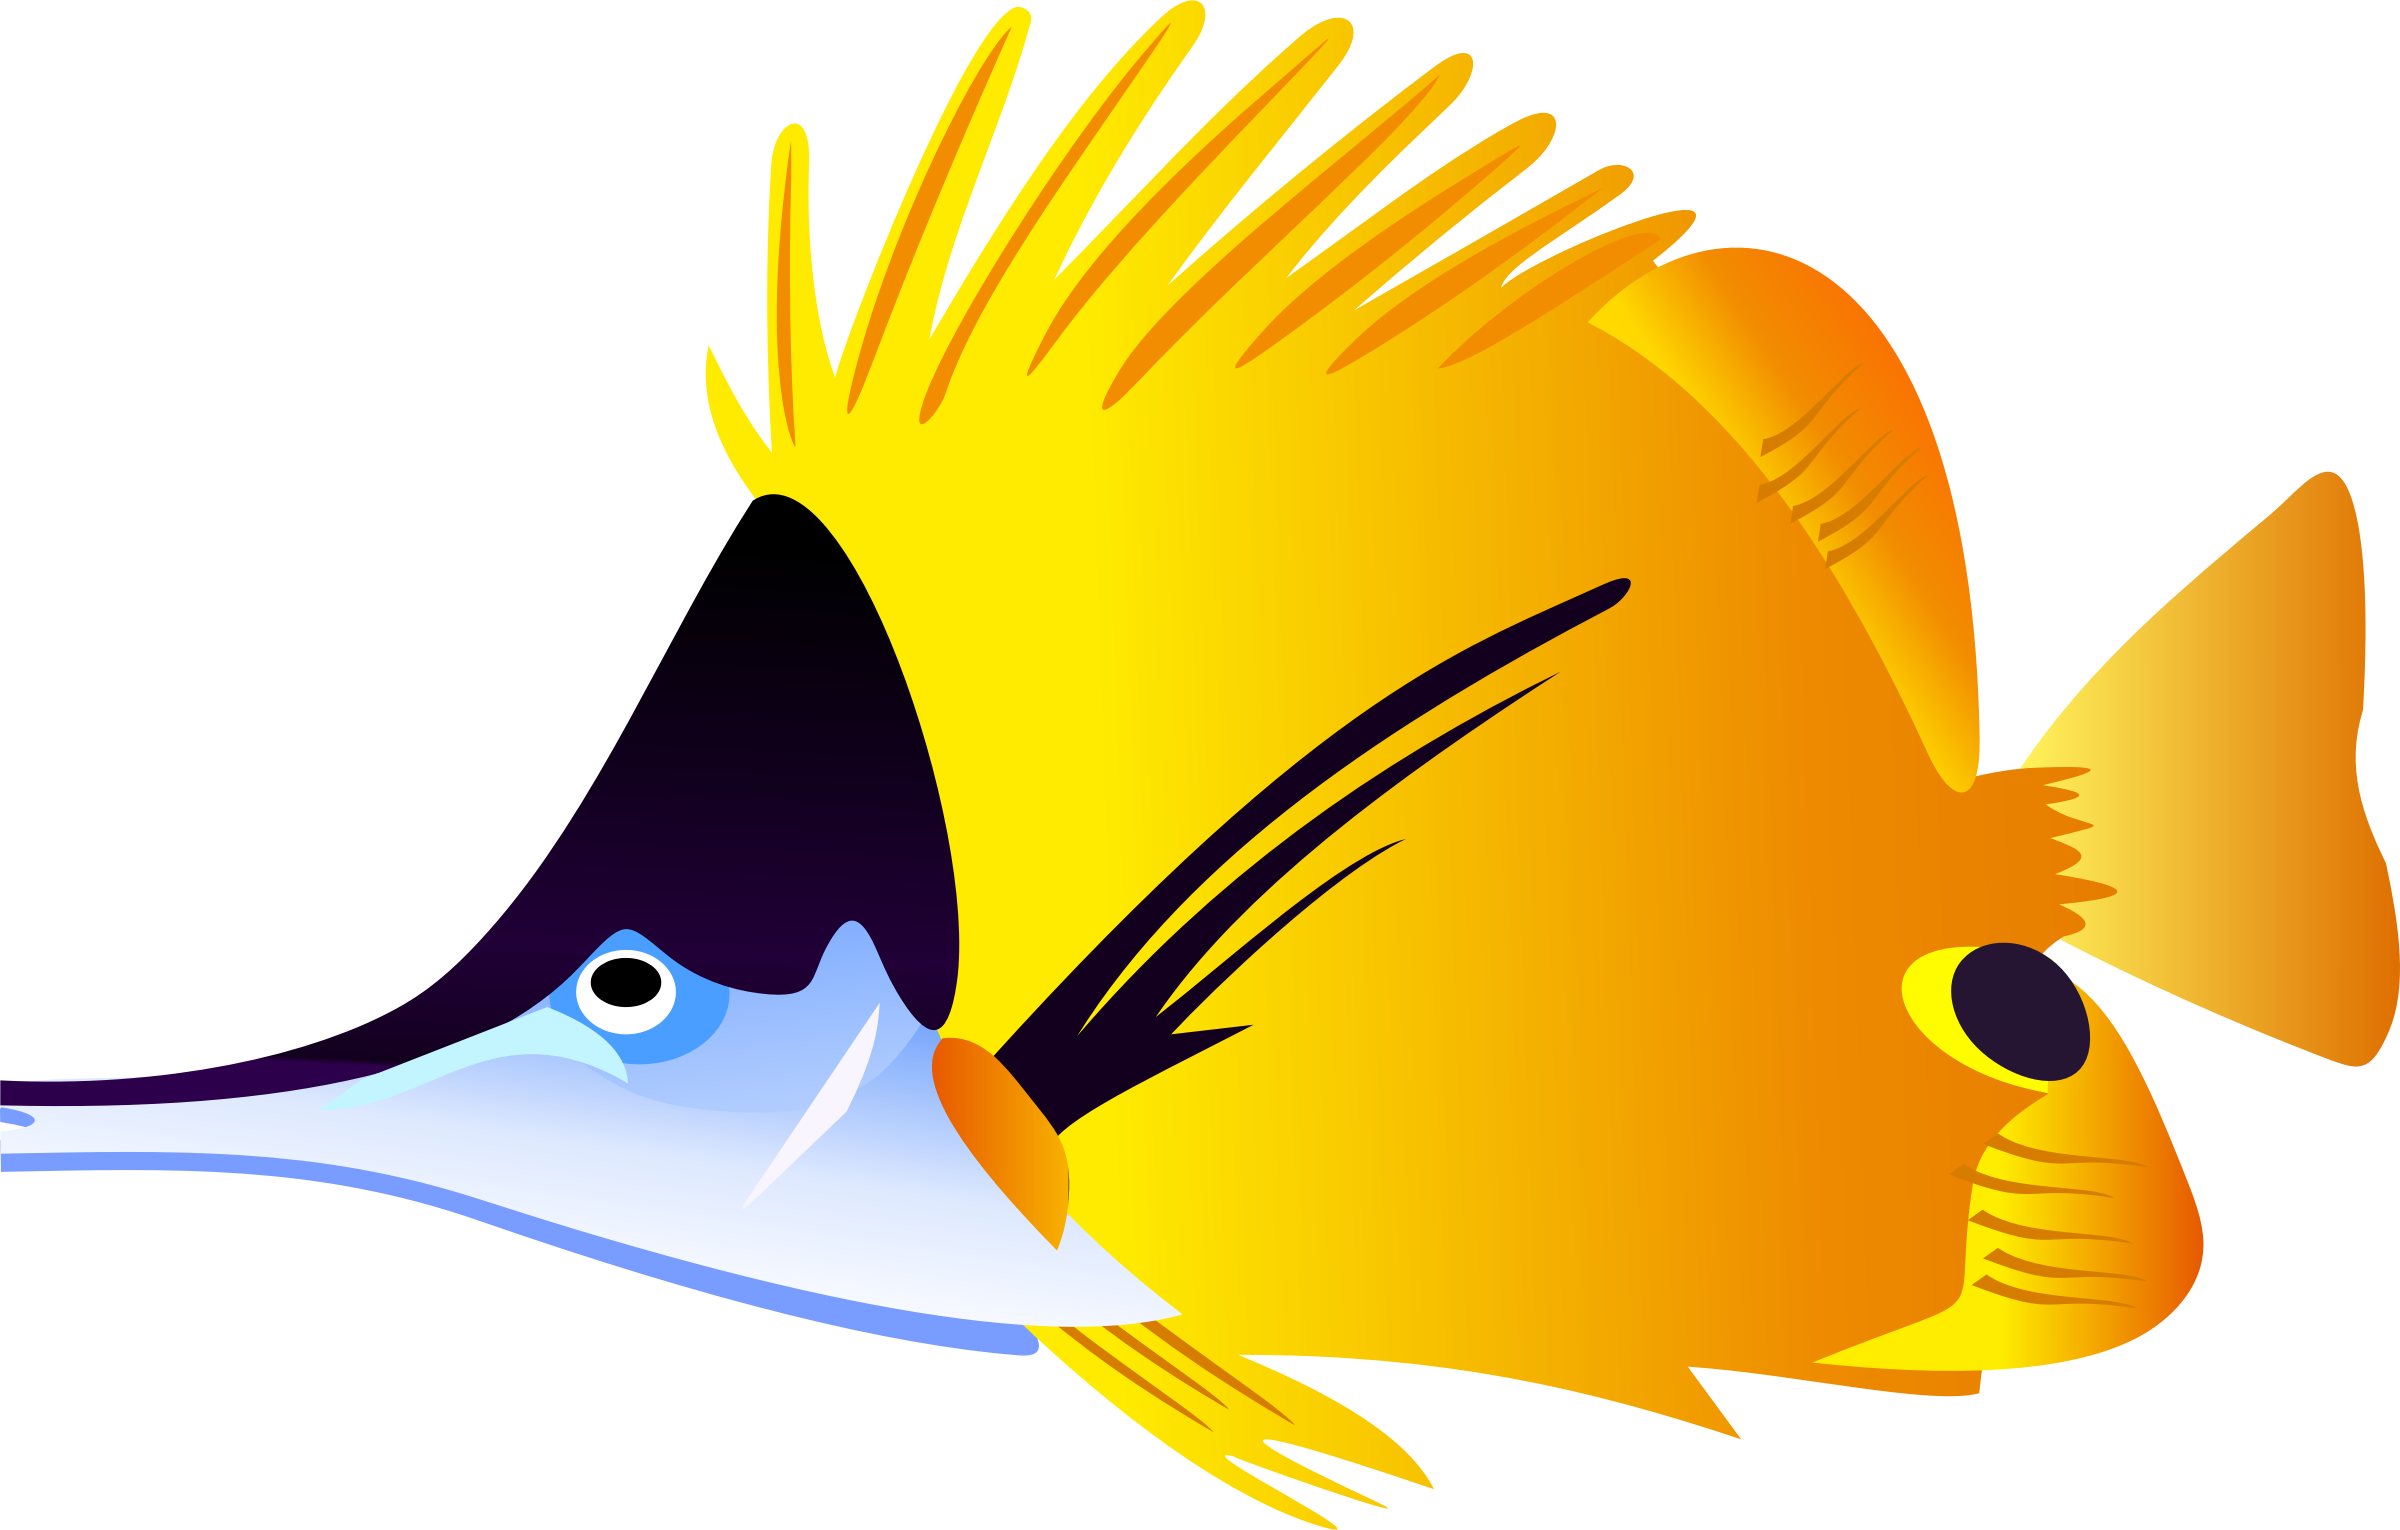 Saltwater fish at getdrawings. Fishing clipart fishing trip